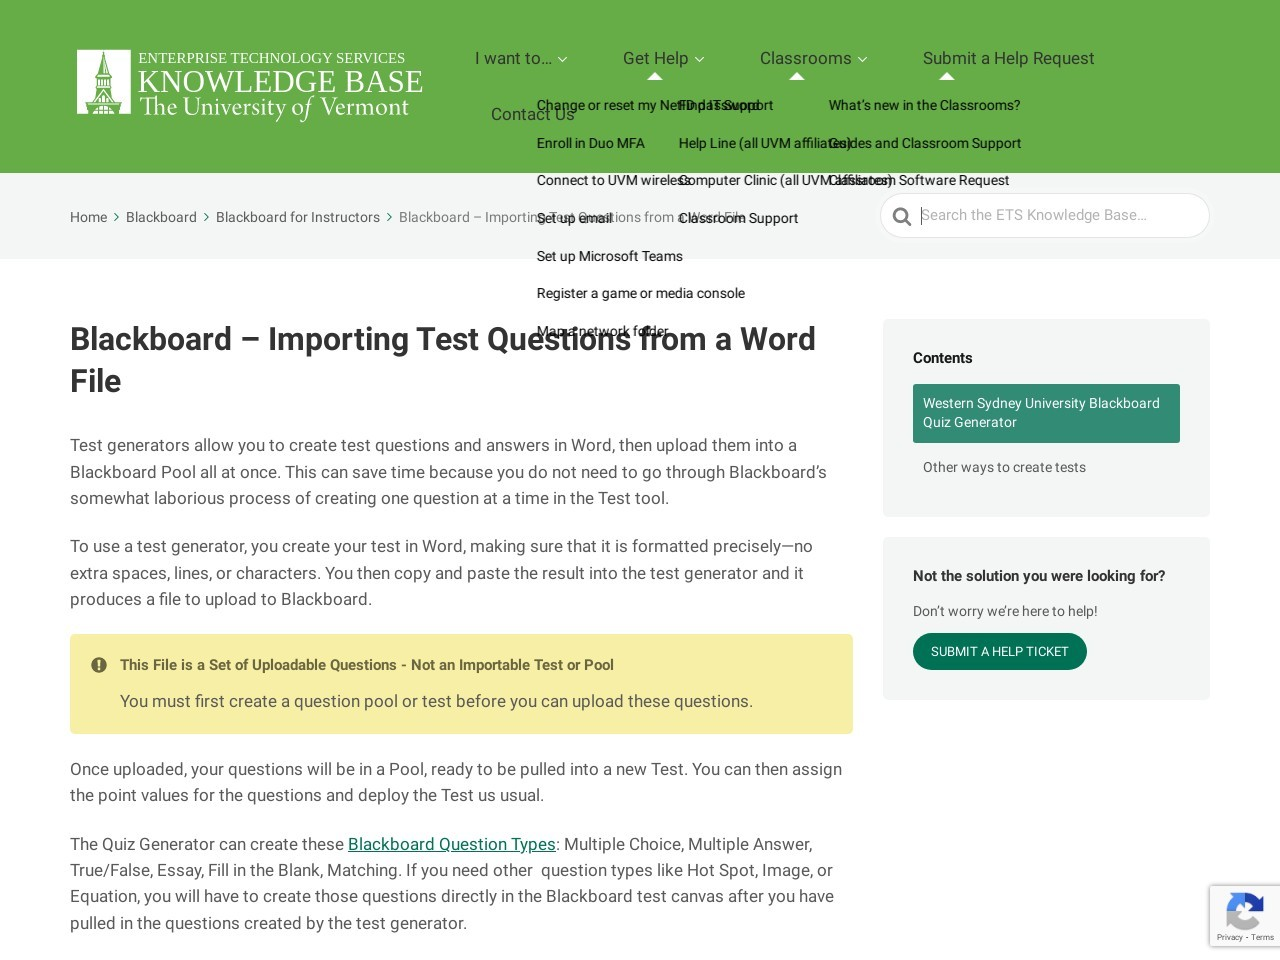 Blackboard – Importing Test Questions from a Word File - The ...